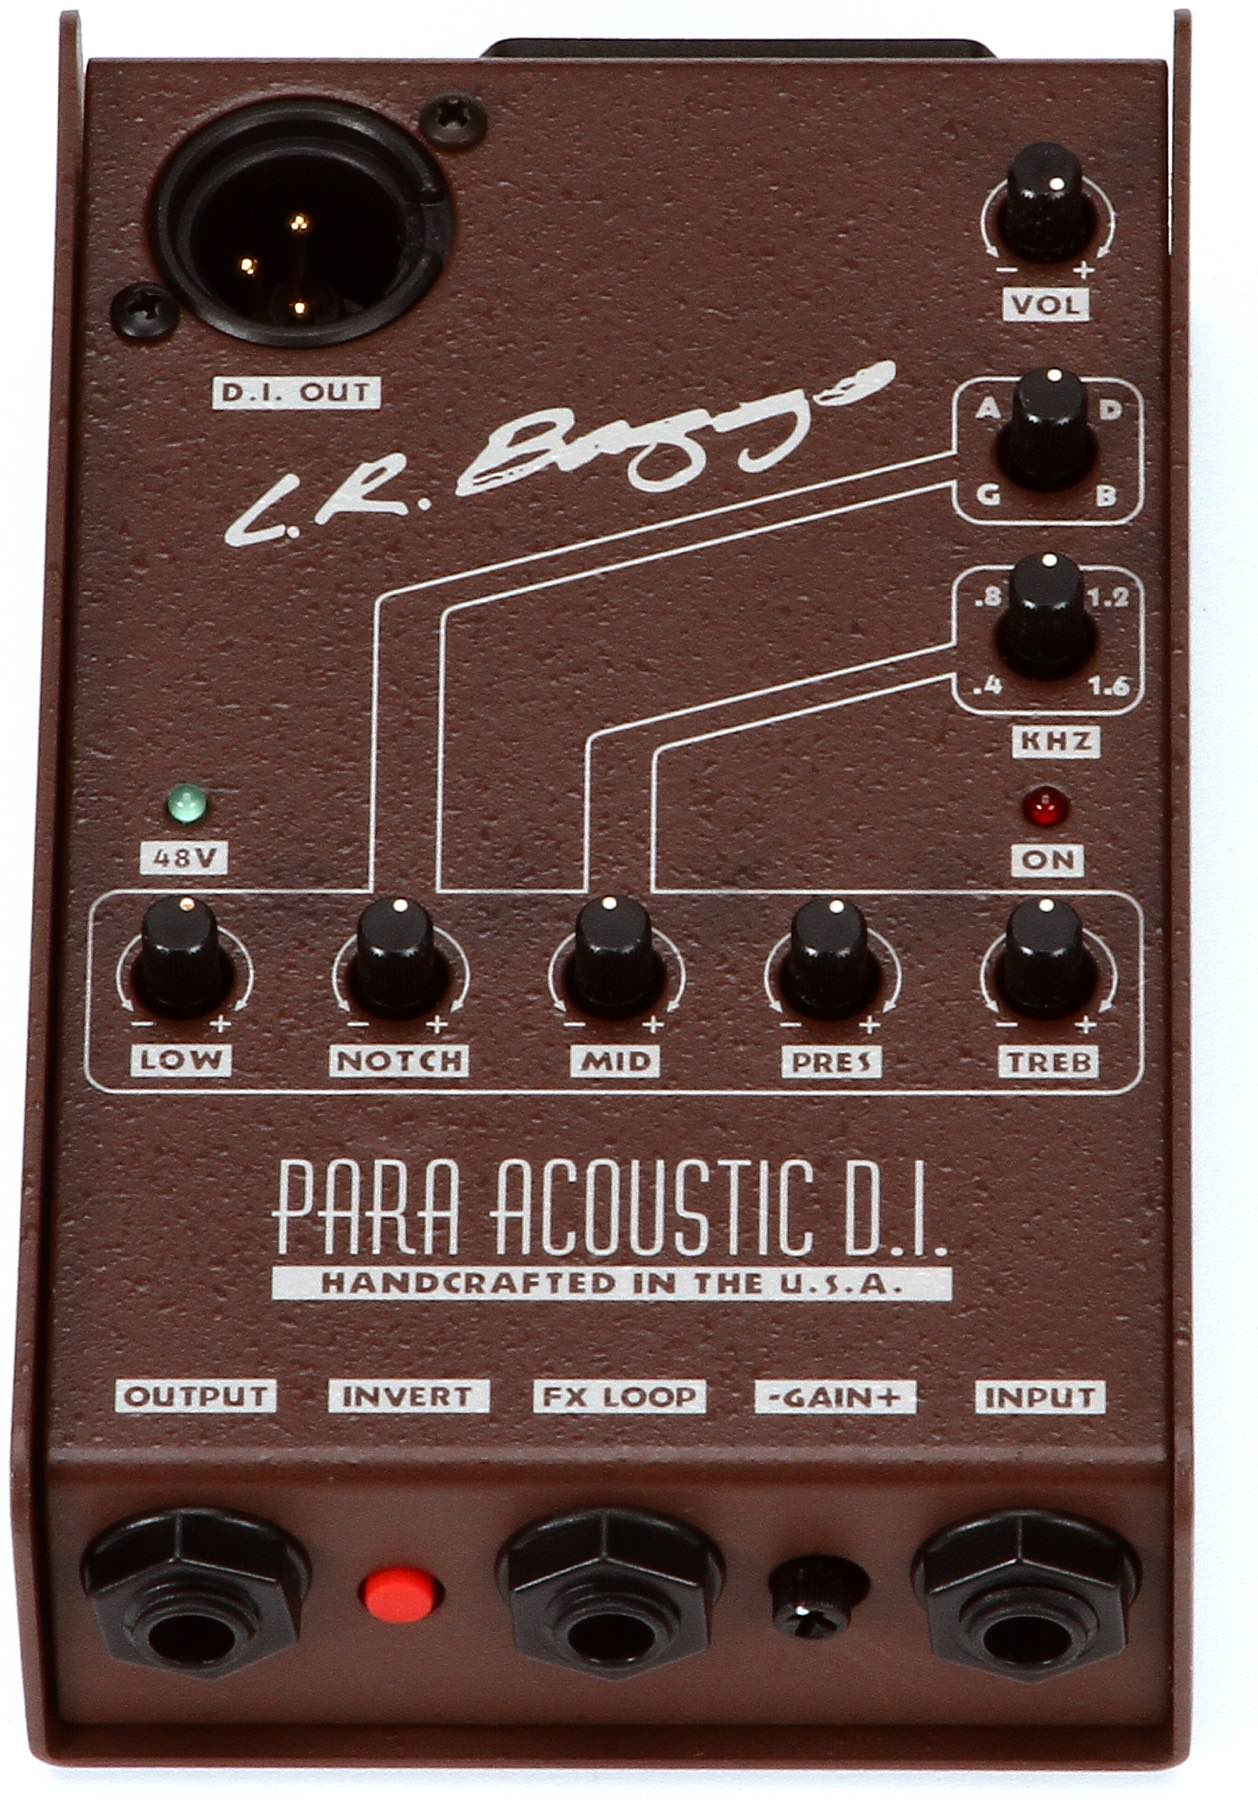 Lr Baggs PARA ACOUSTIC DI - Pré Amplificador, Direct box e 5 band EQ